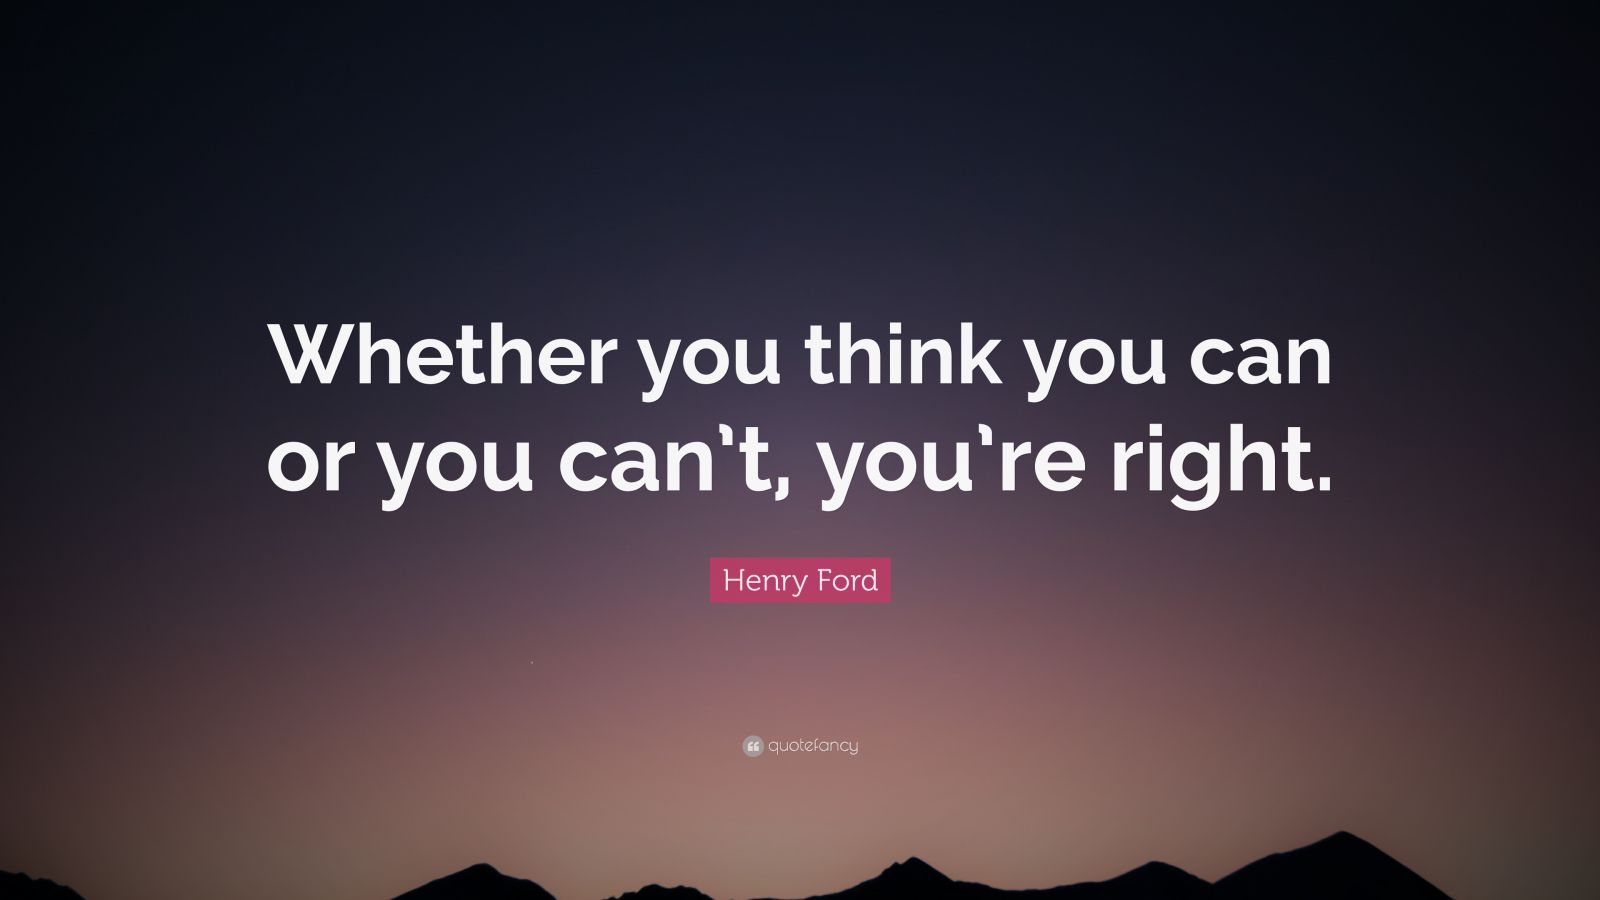 Henry Ford Quotes  100 wallpapers    Quotefancy Henry Ford Quote     Whether you think you can or you can t